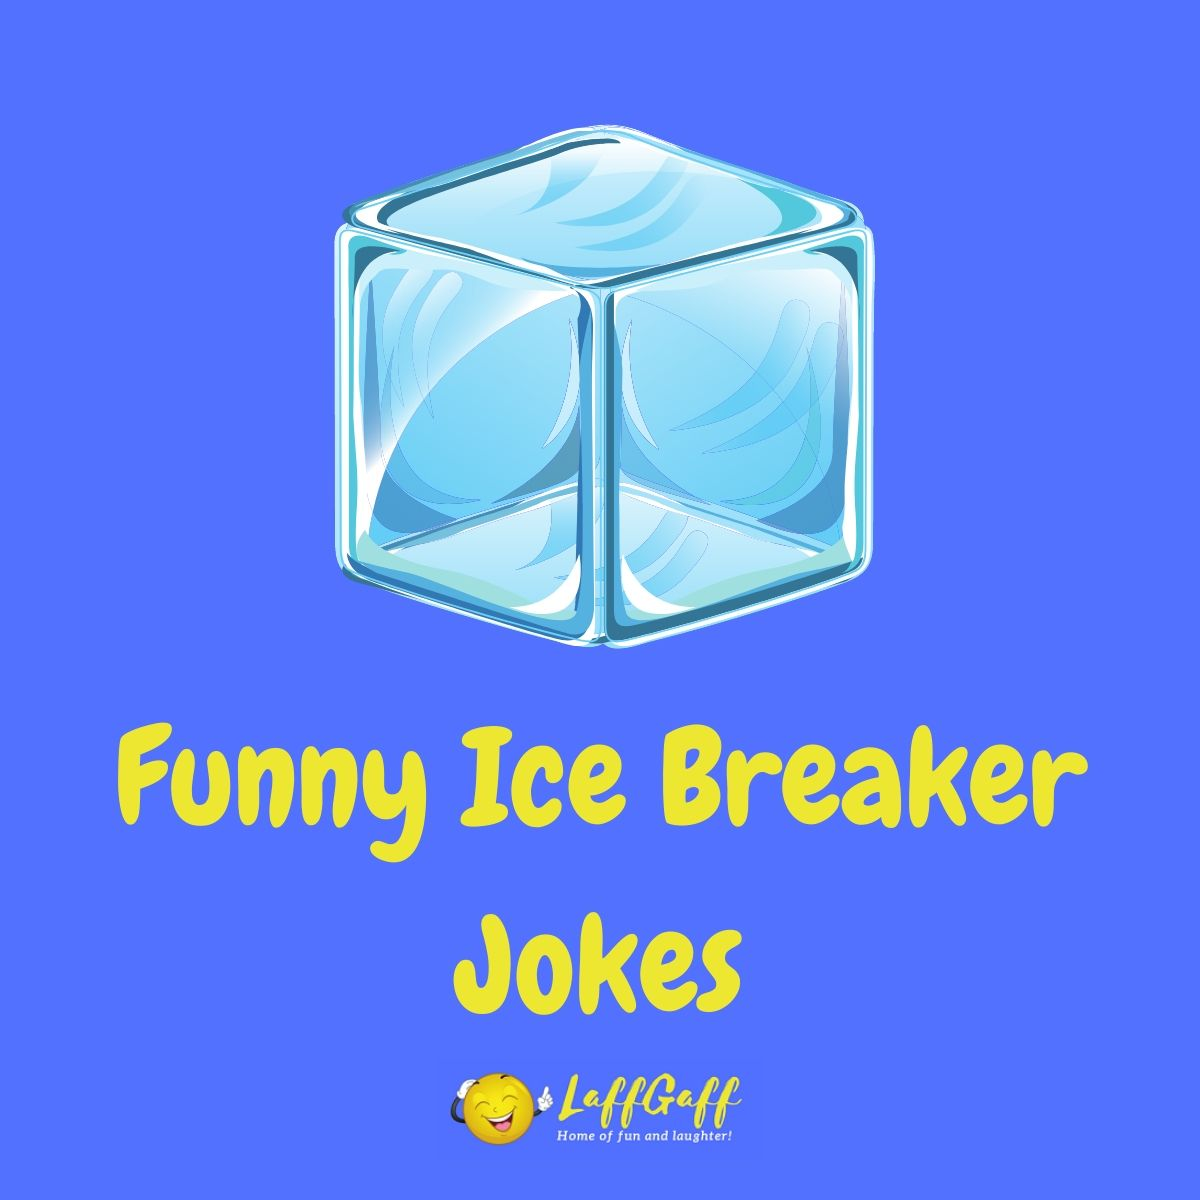 Featured image for a page of funny ice breaker jokes.